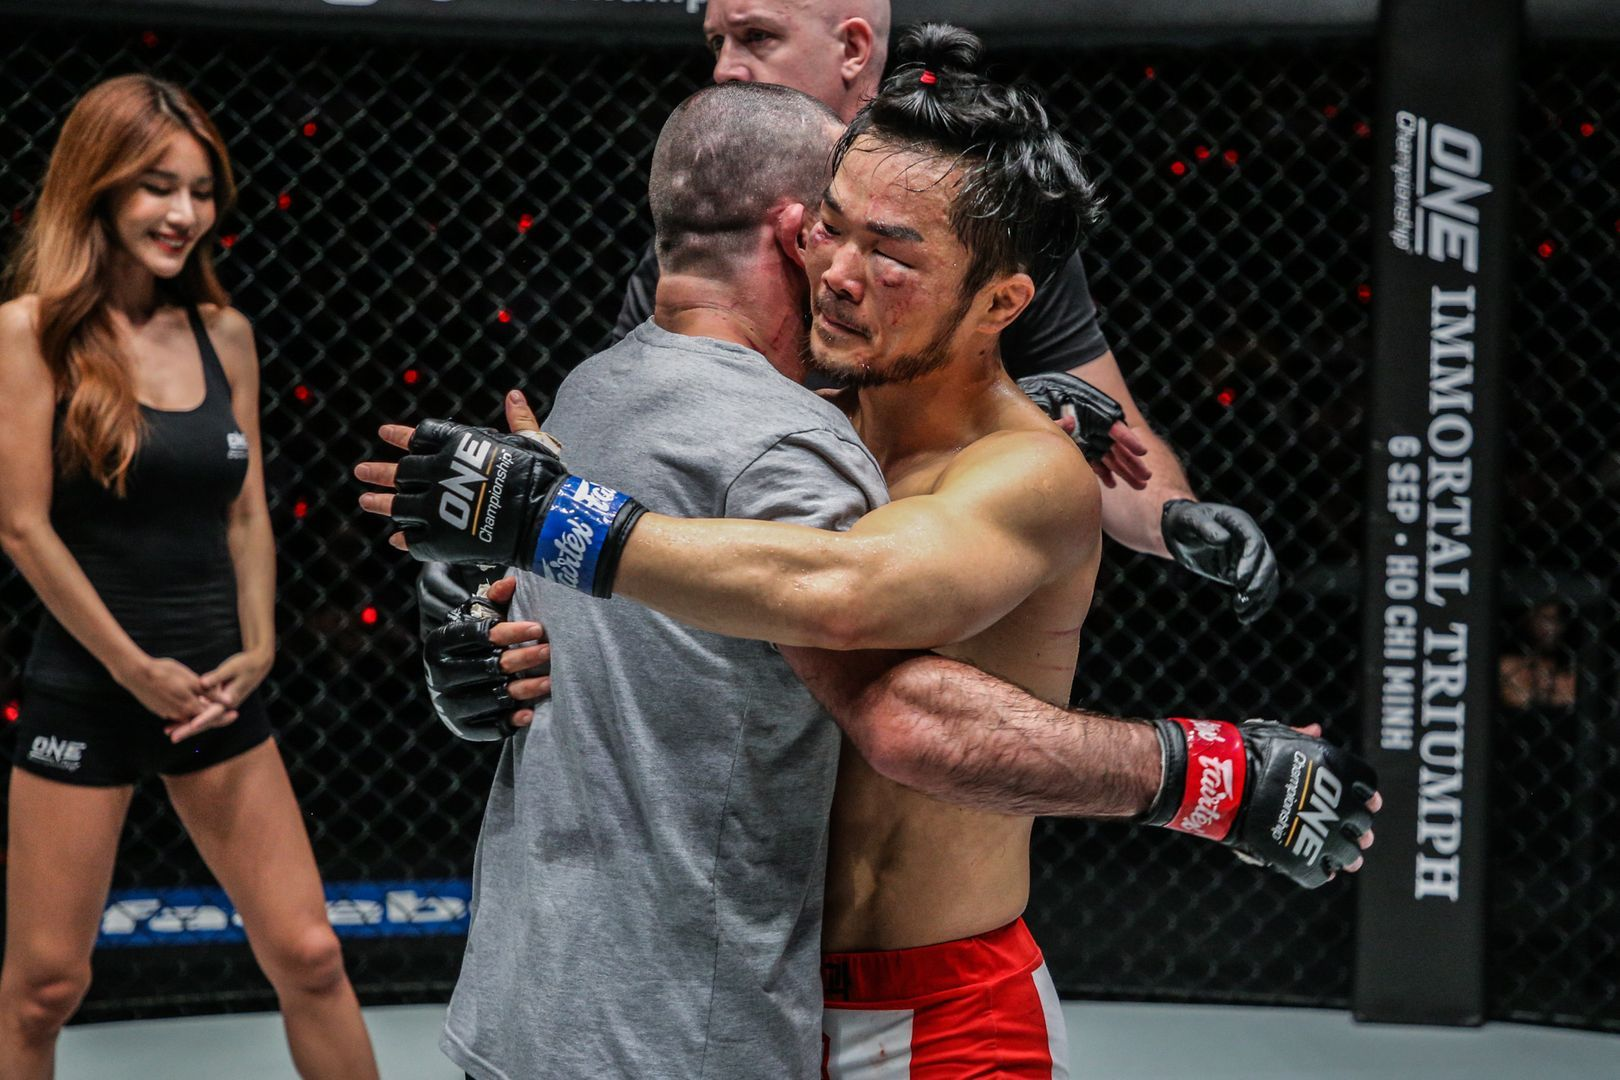 Russian martial artist Yusup Saadulaev hugs South Korean athlete Dae Hwan Kim